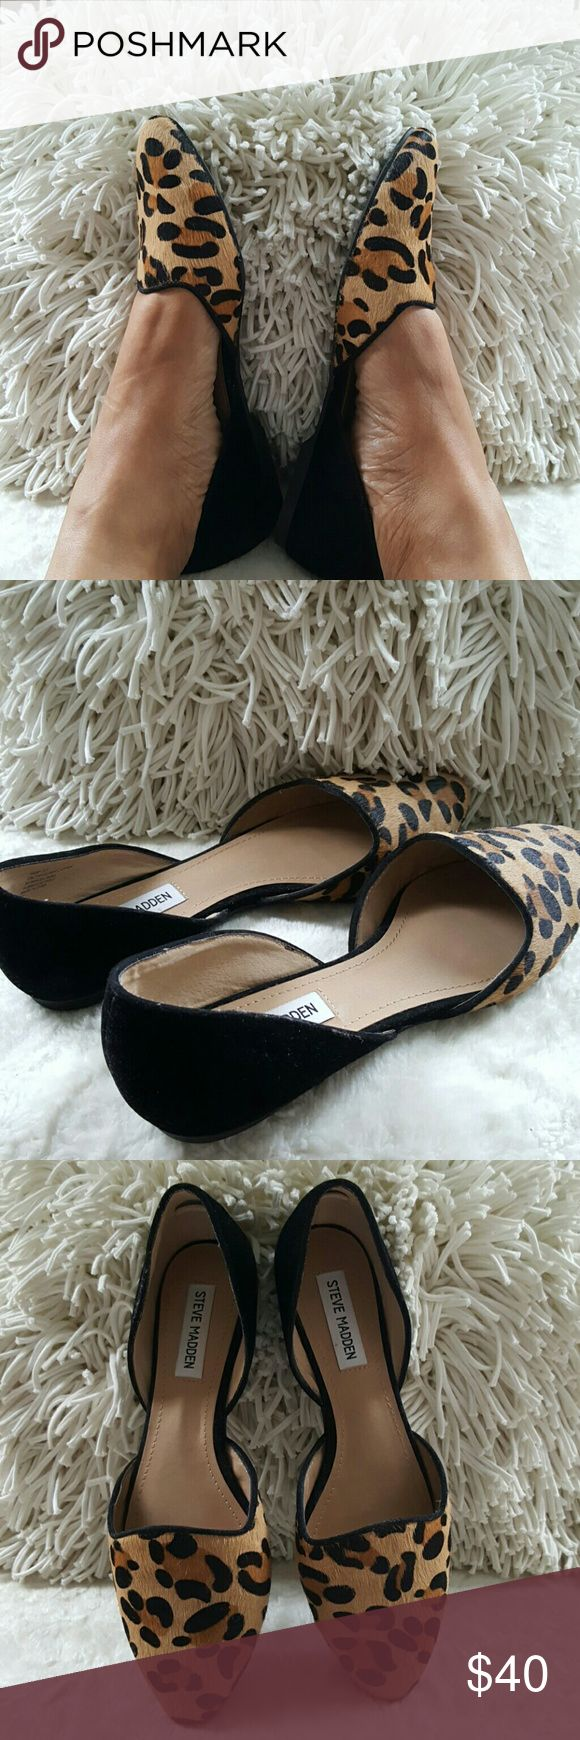 Steve Madden Vamp Leopard Flats Gorgeous, classic 2 pc leopard/black calf hair flats.  Worn once, excellent condition, no flaws. Steve Madden Shoes Flats & Loafers